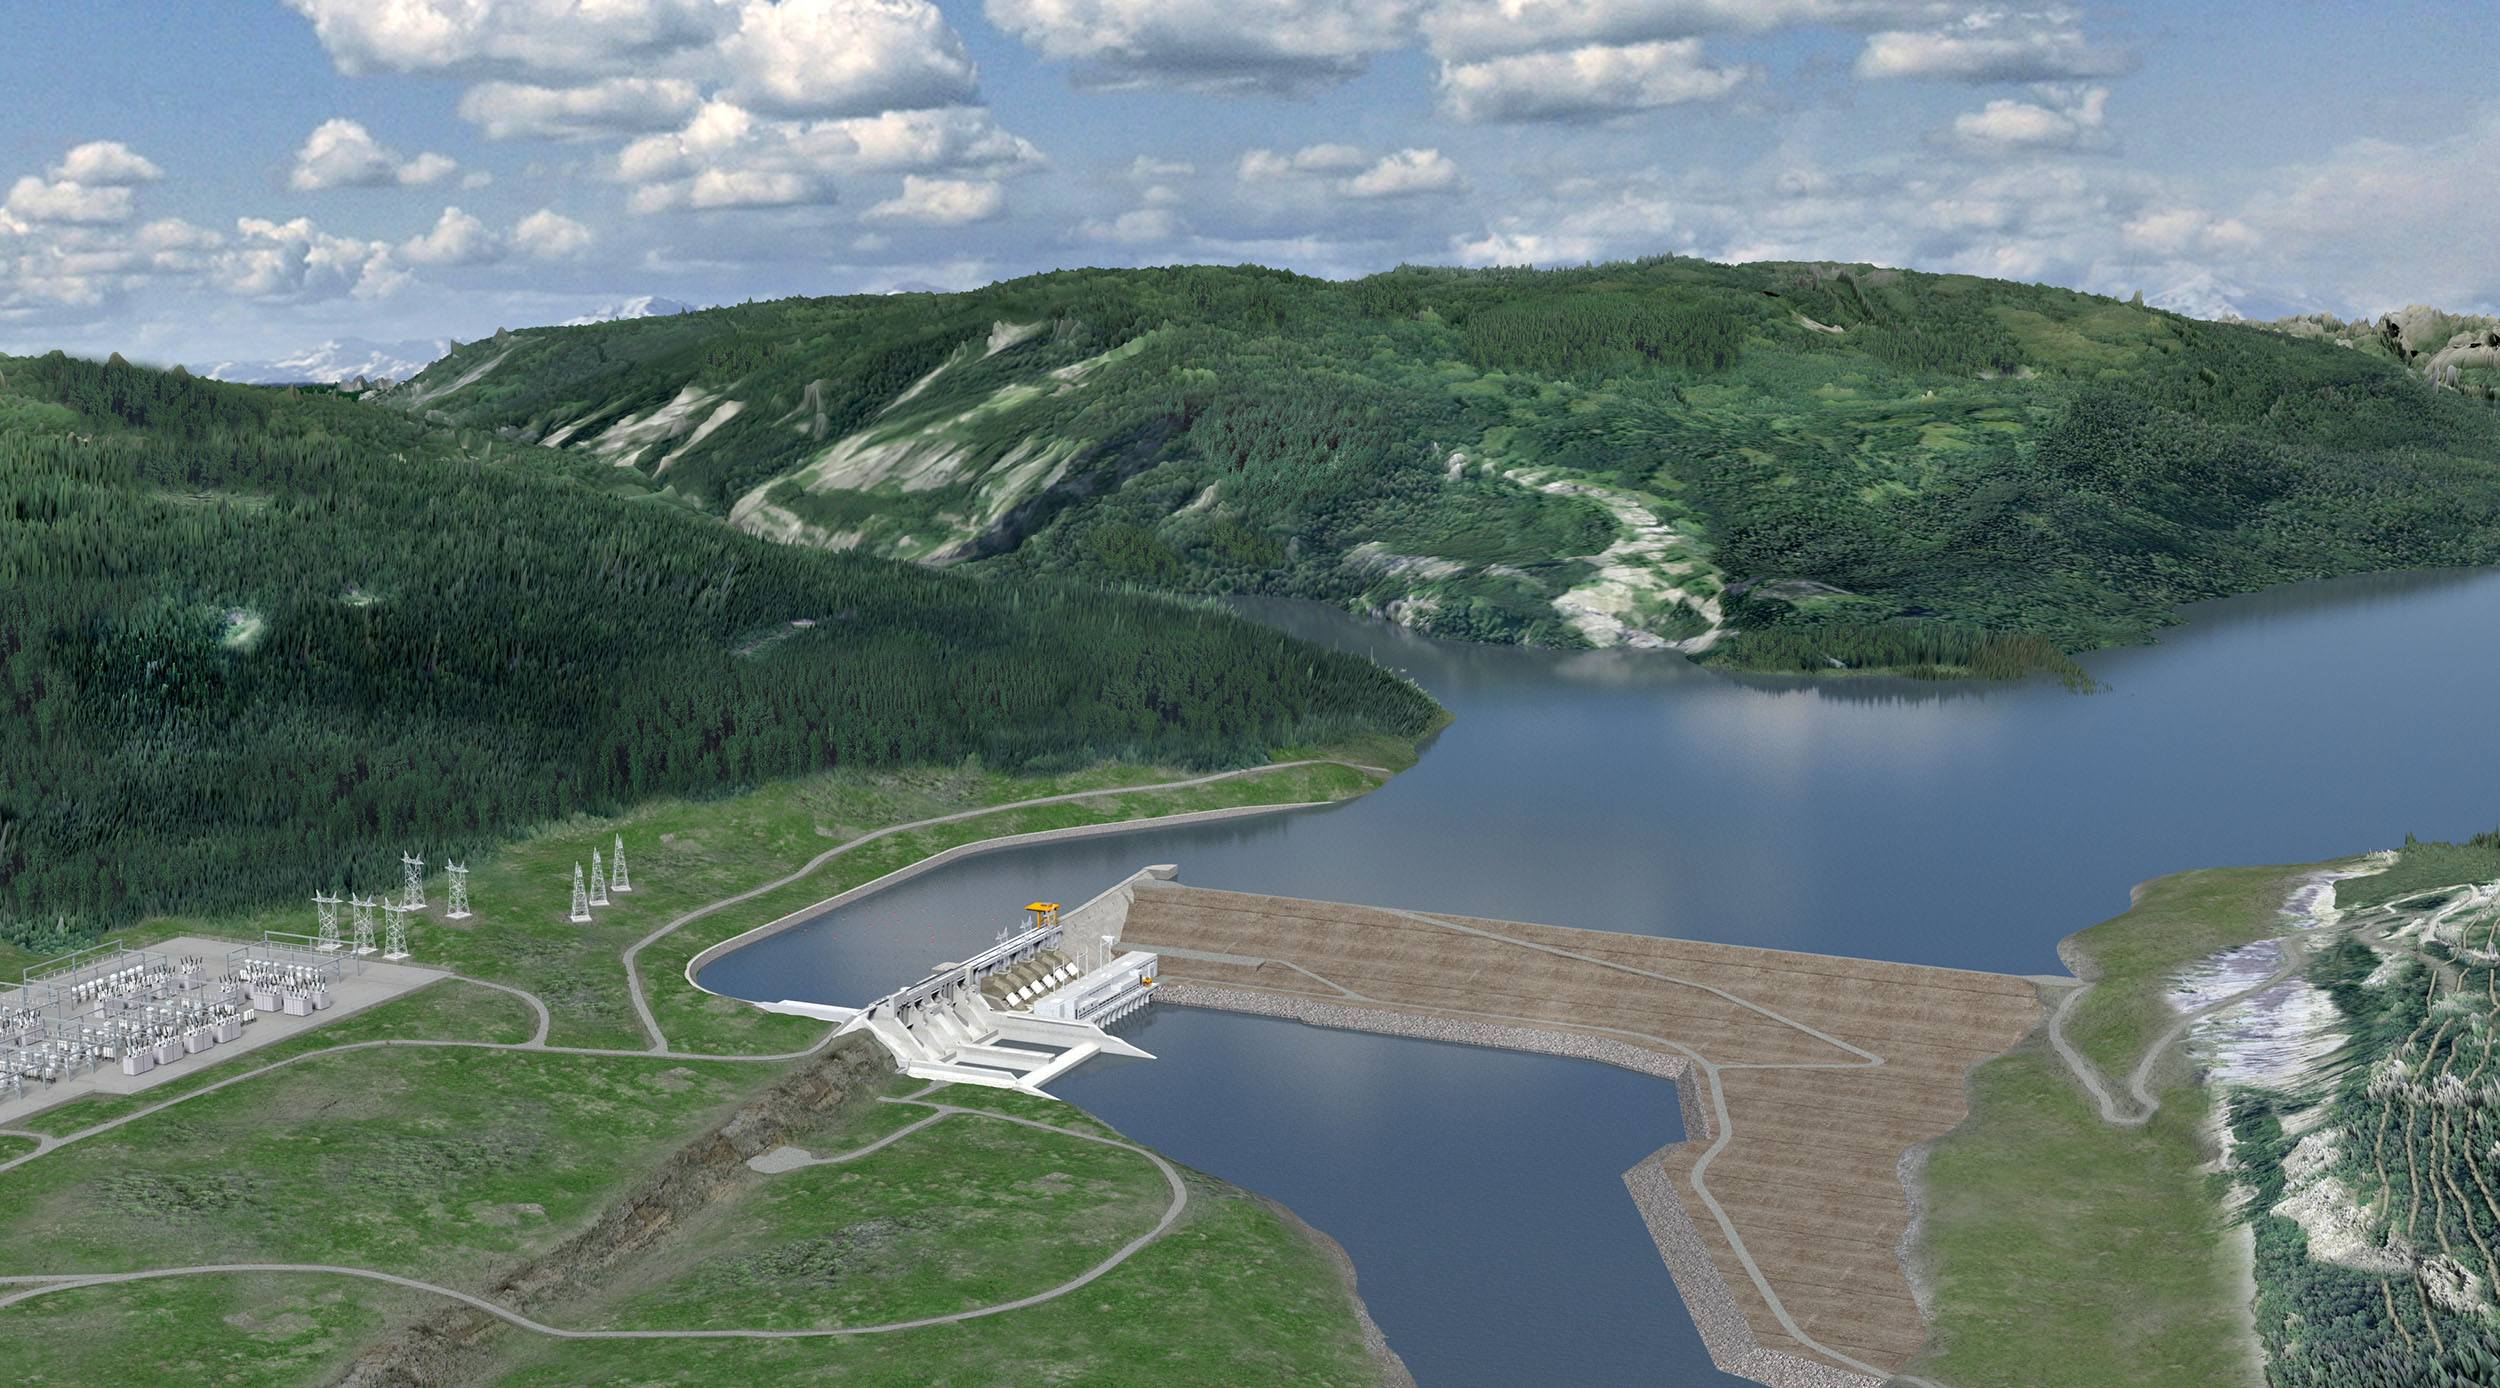 WTF is going on with Site C?